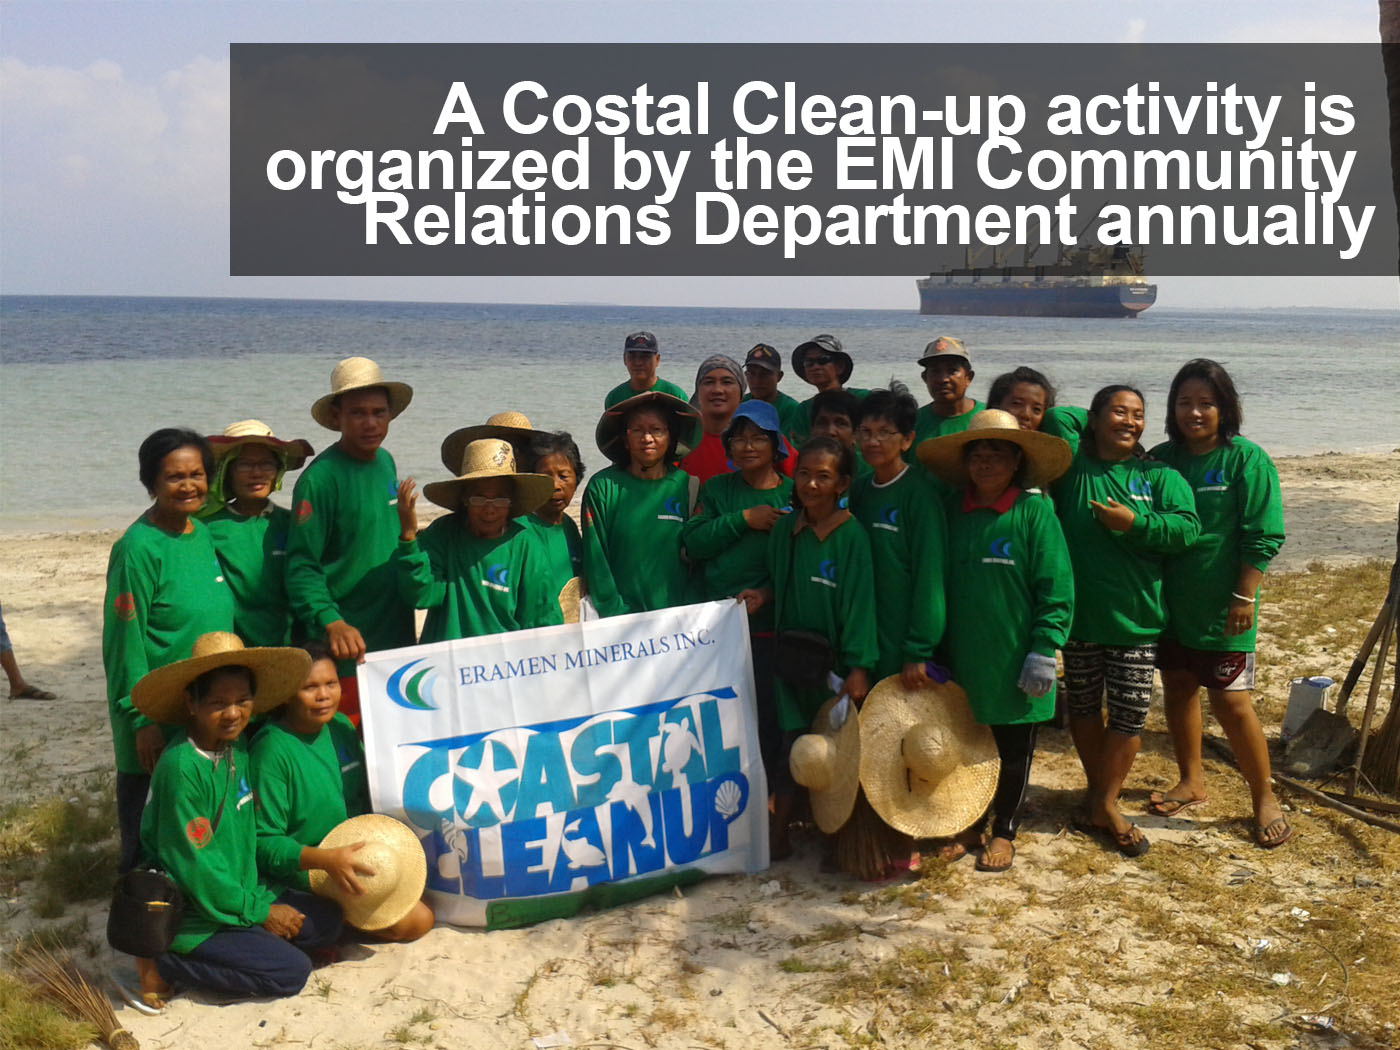 A Costal Clean-up activity is organized by the EMI Community Relations Department annually. EMI employee, scholars, the local government units, non-governmental organizations  and other volunteers participate in this event.